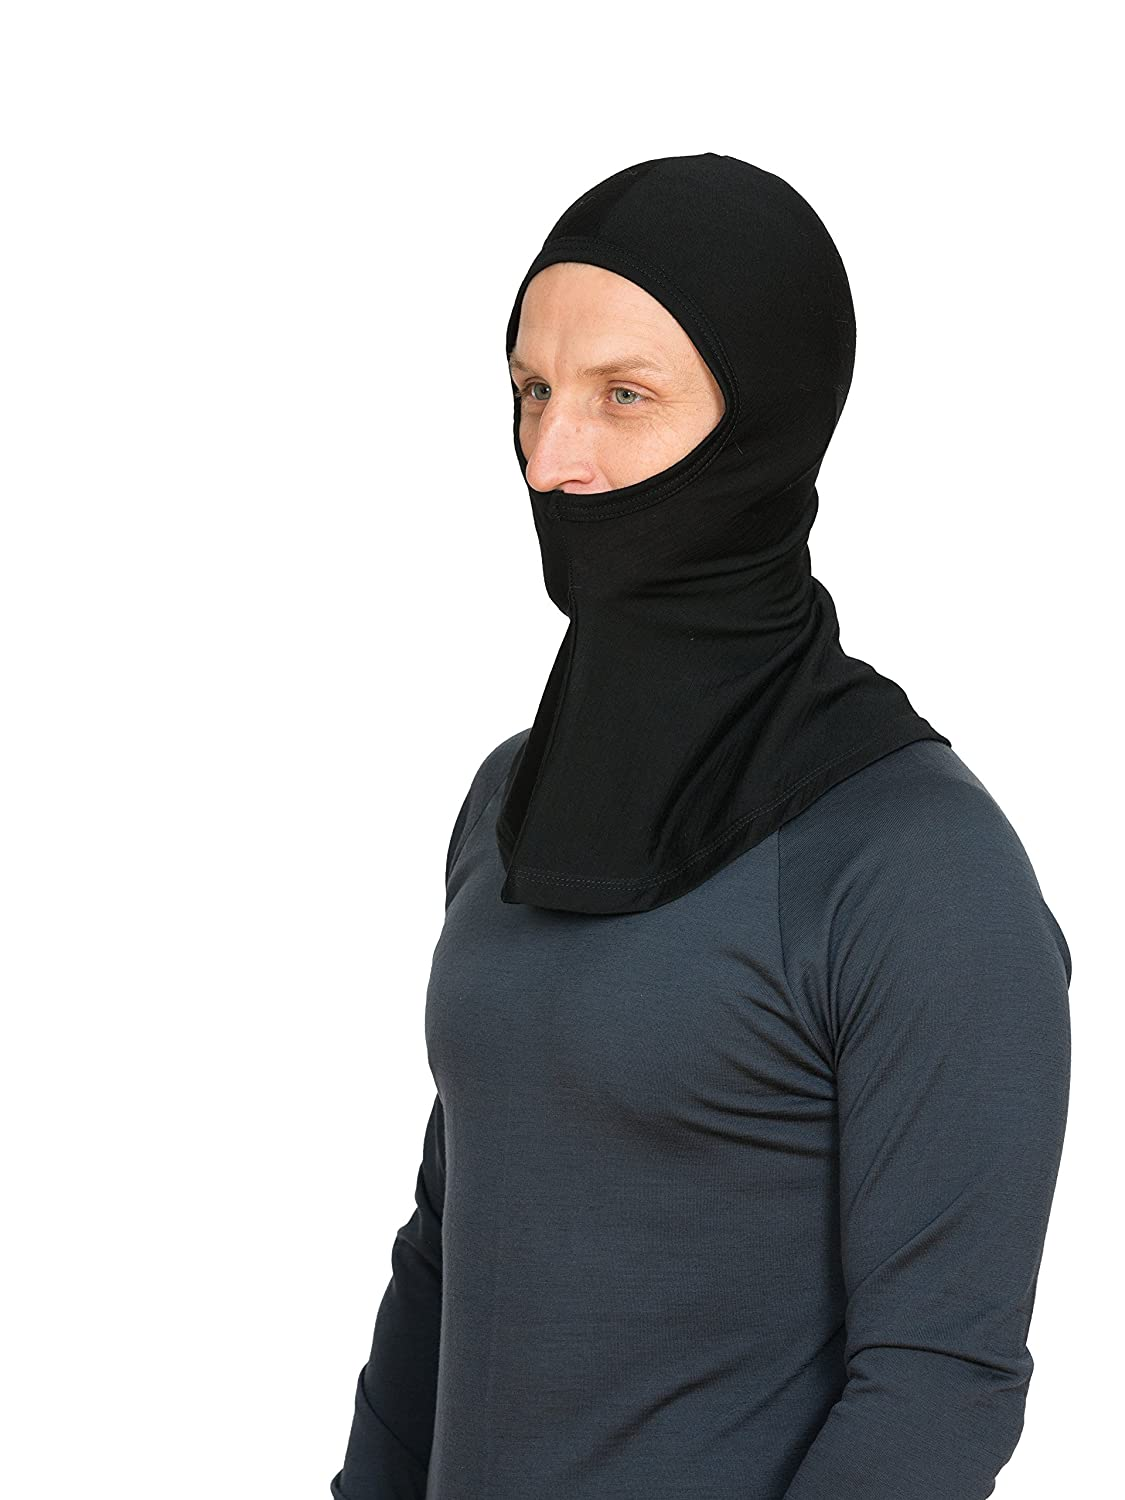 Brass Monkeys 100% Merino Wool Balaclava Made in New Zealand